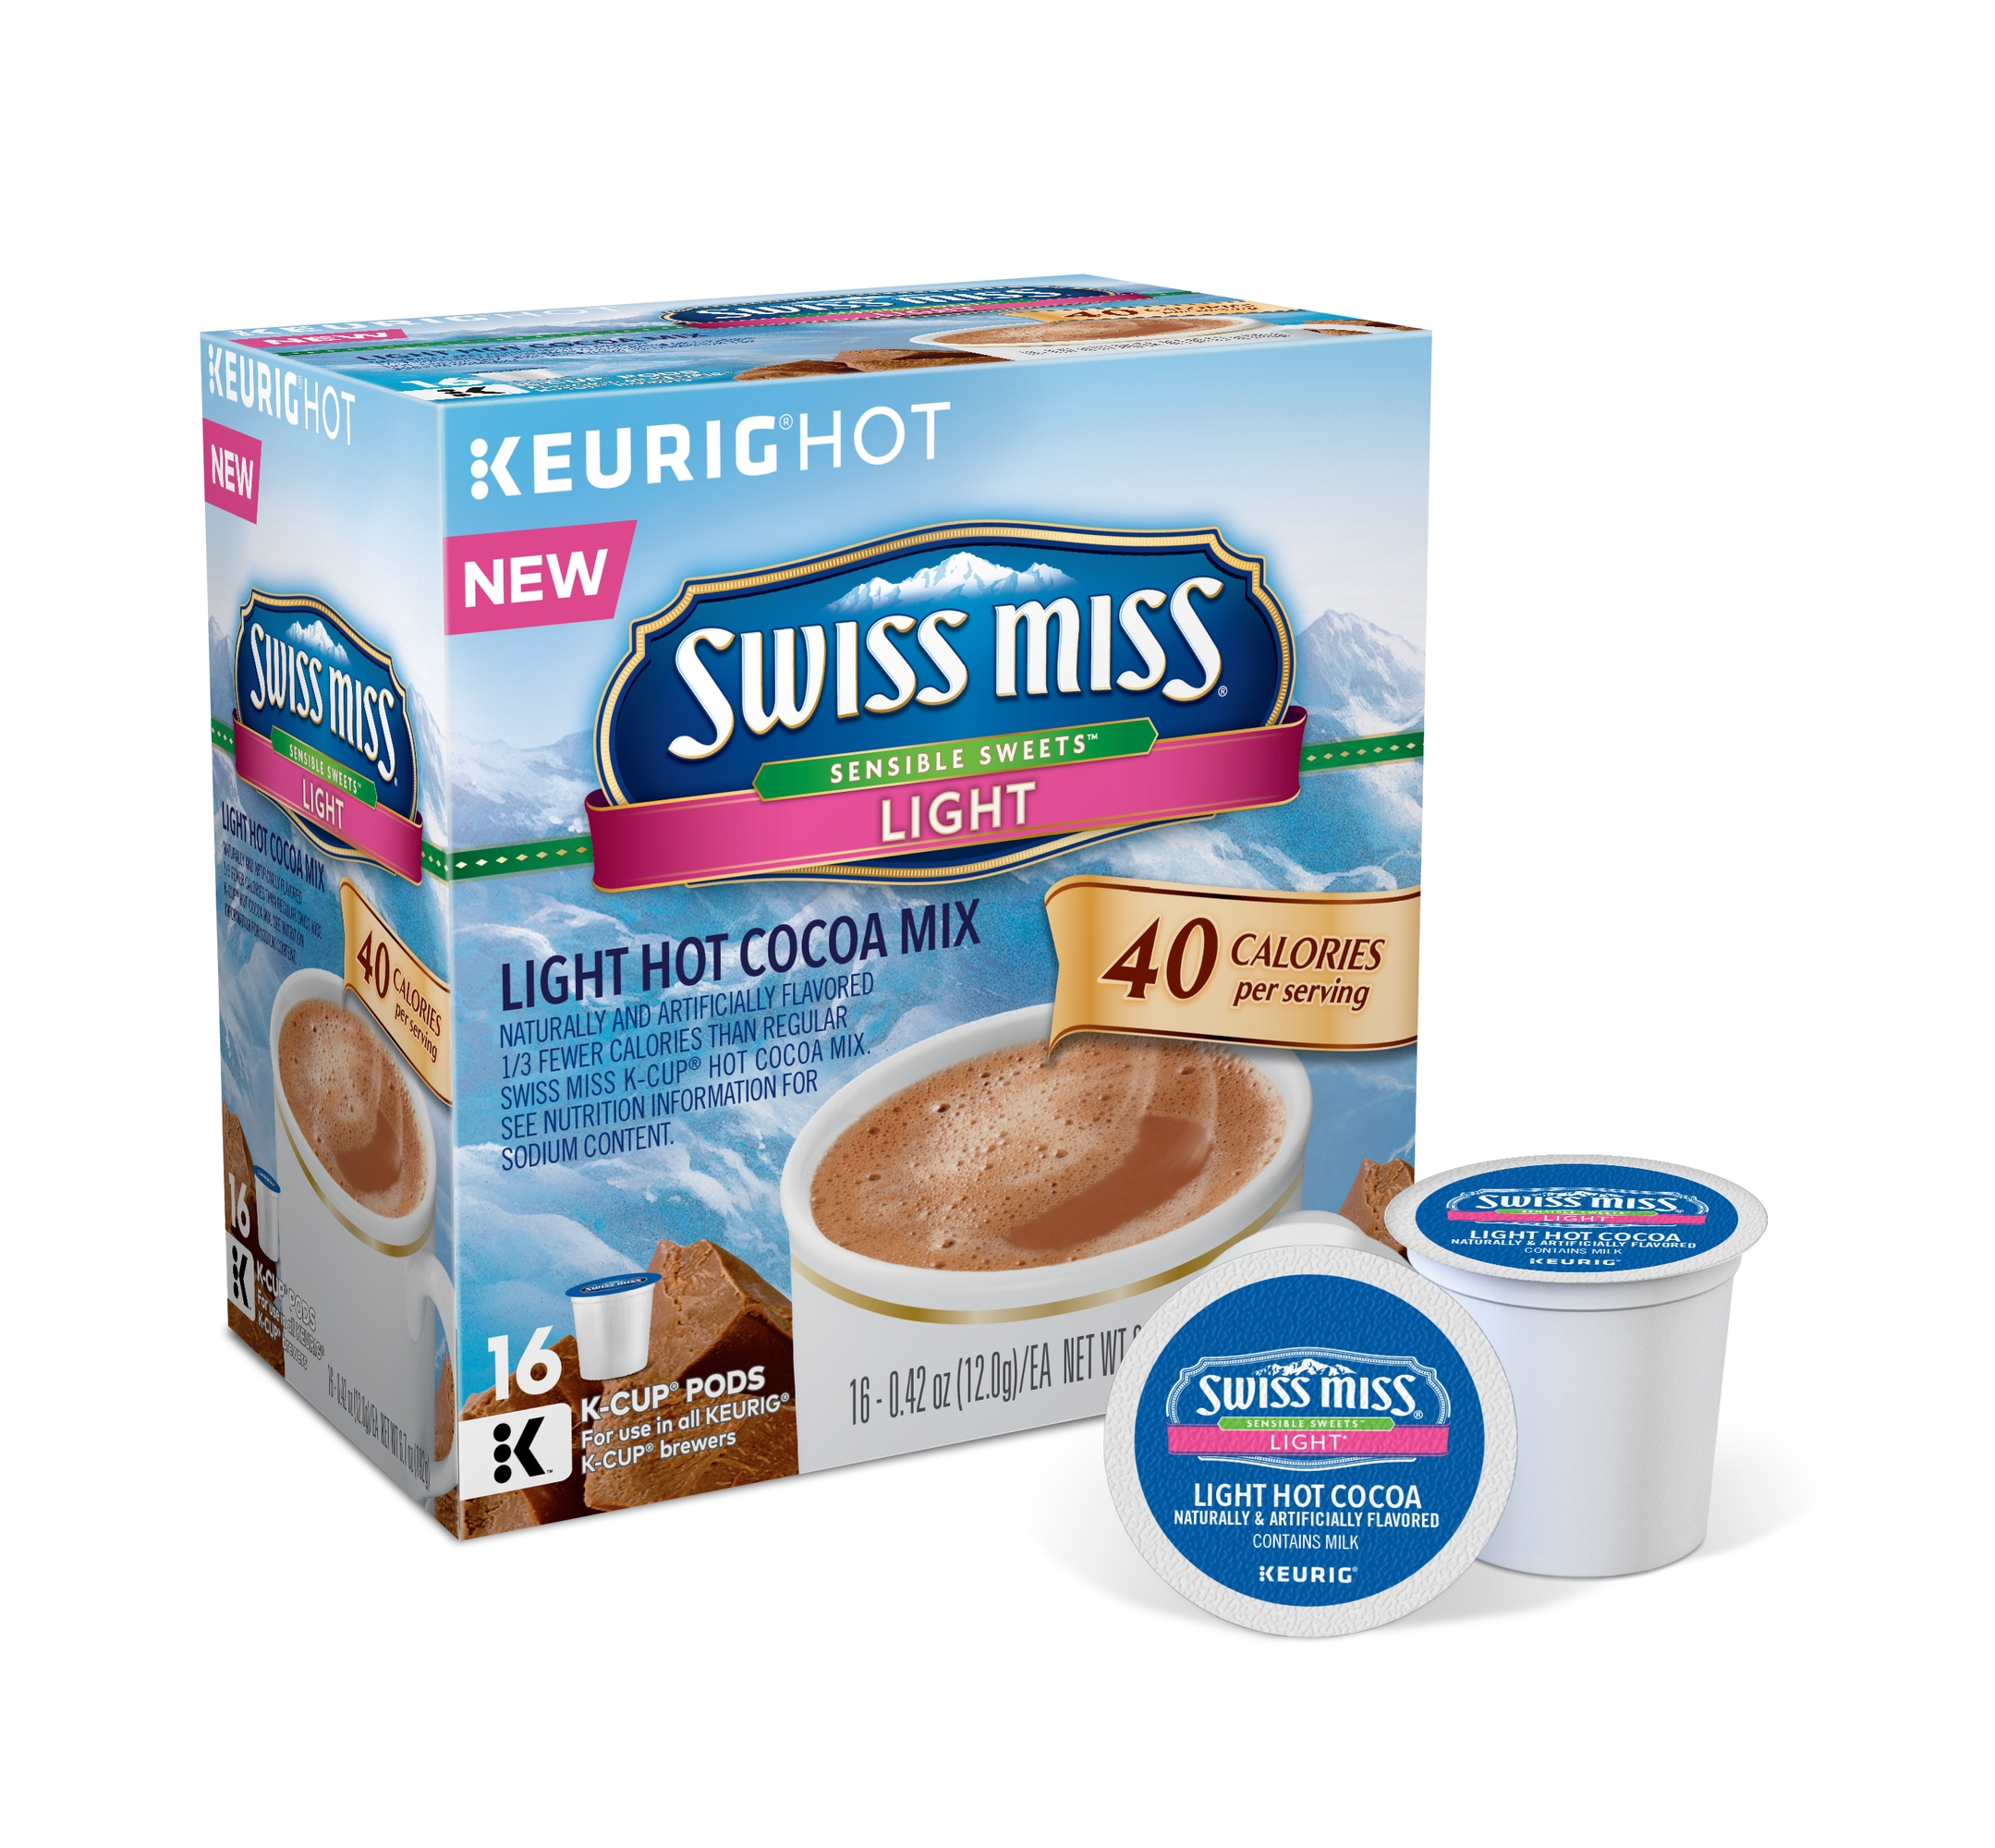 Keurig Hot Chocolate Calories